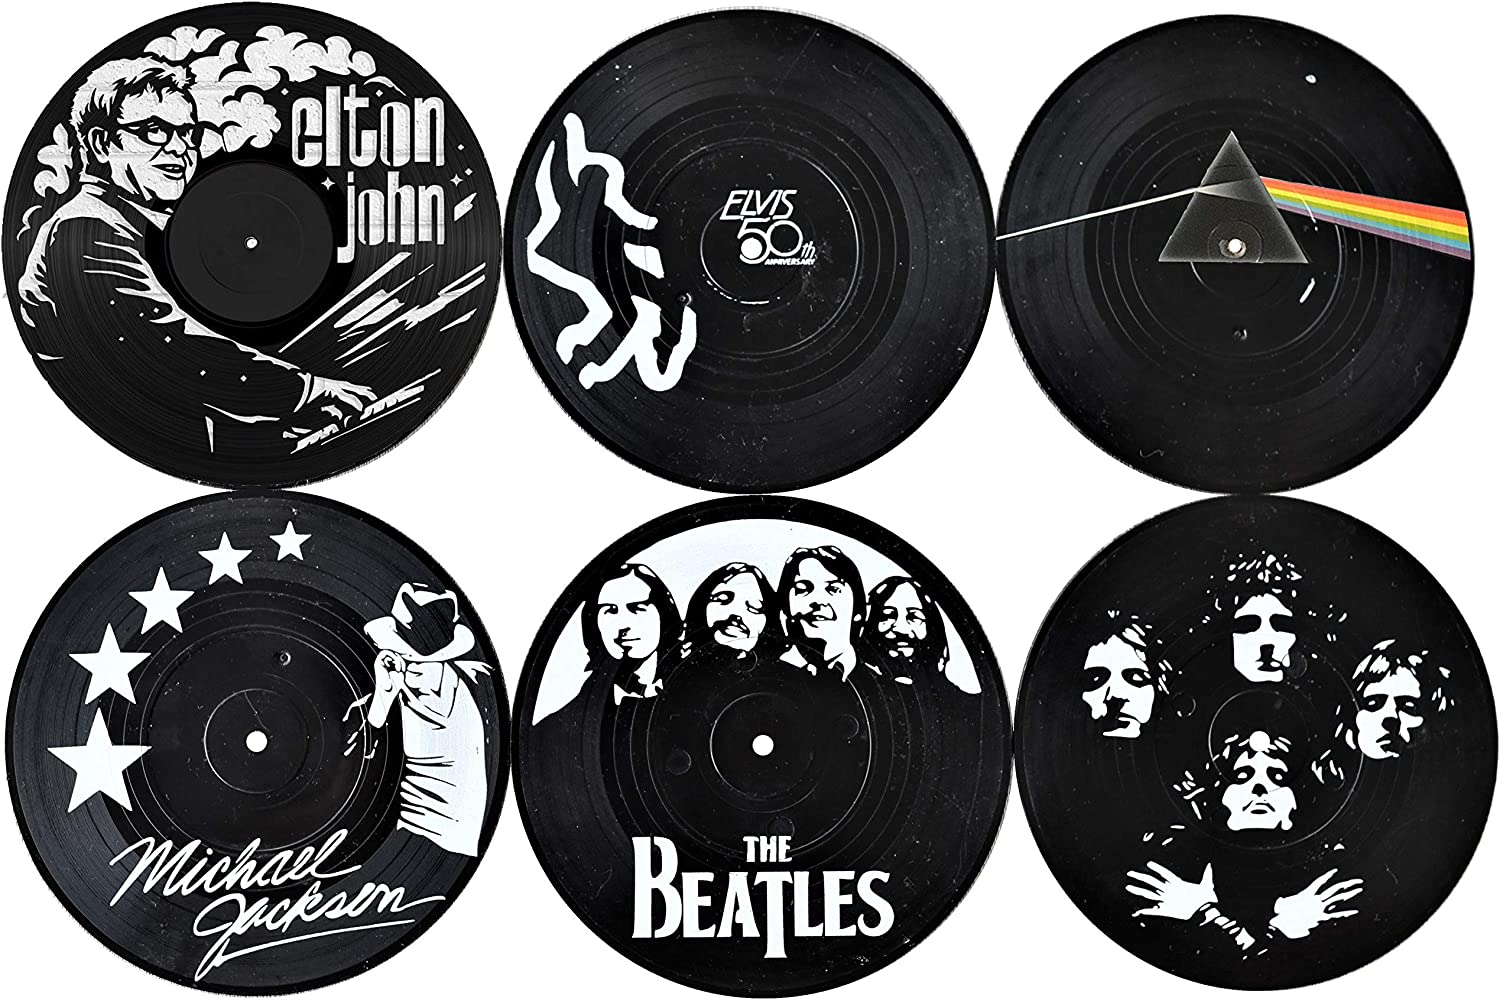 Our Casa Coasters For Drinks | Home Decor Music Coaster (6-Piece Set) With Vinyl Record Design | Gift For New Home, Housewarming, Indoor, Living Room Decoration | Black And White Design